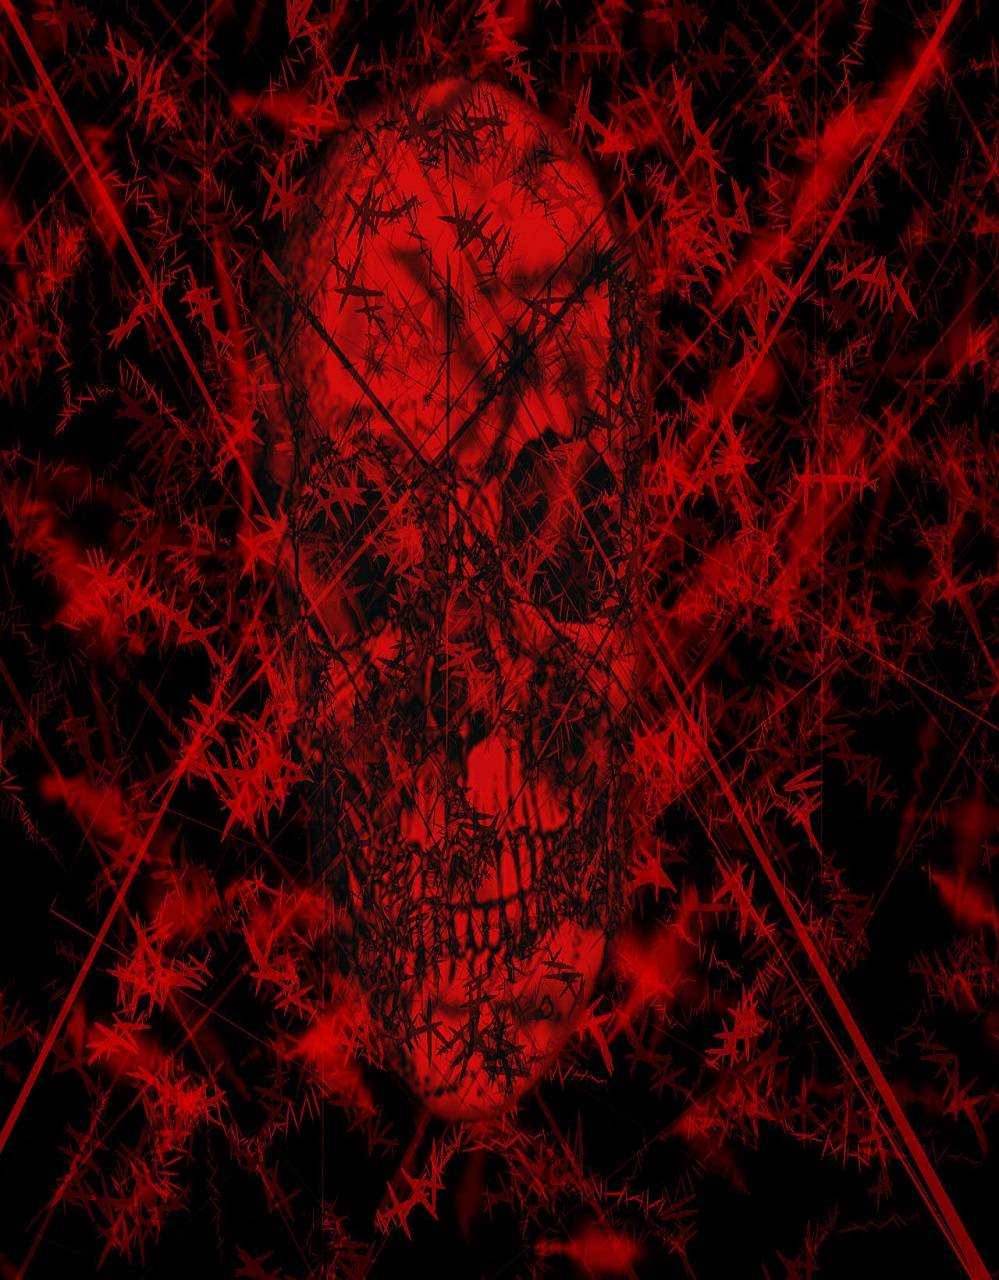 Red And Black Skull Wallpaper By Whiskylover98 Db Free On Zedge